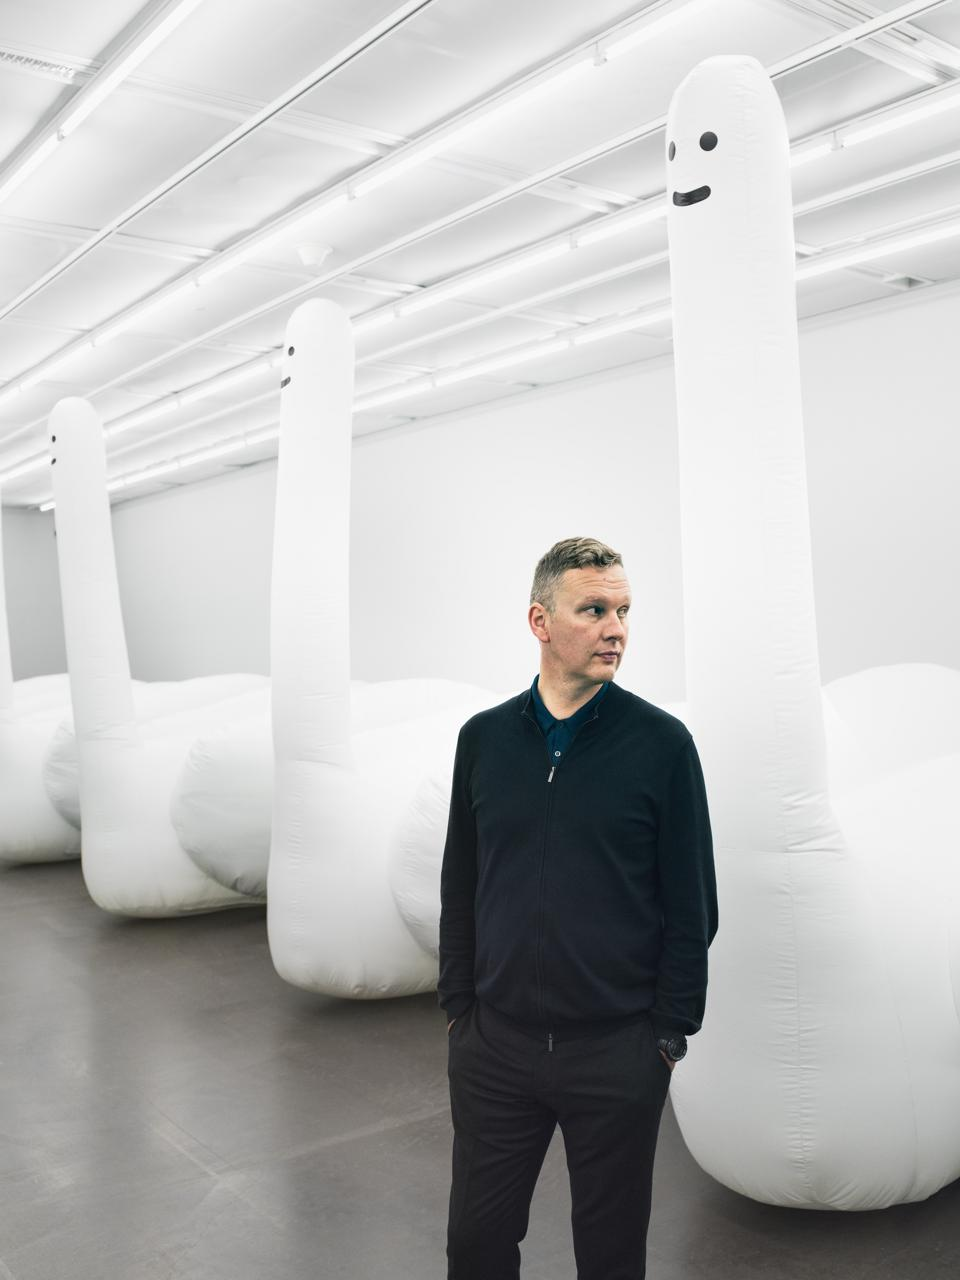 A David Shrigley exhibition of giant inflatable Swan-things at Spritmuseum in Stockholm